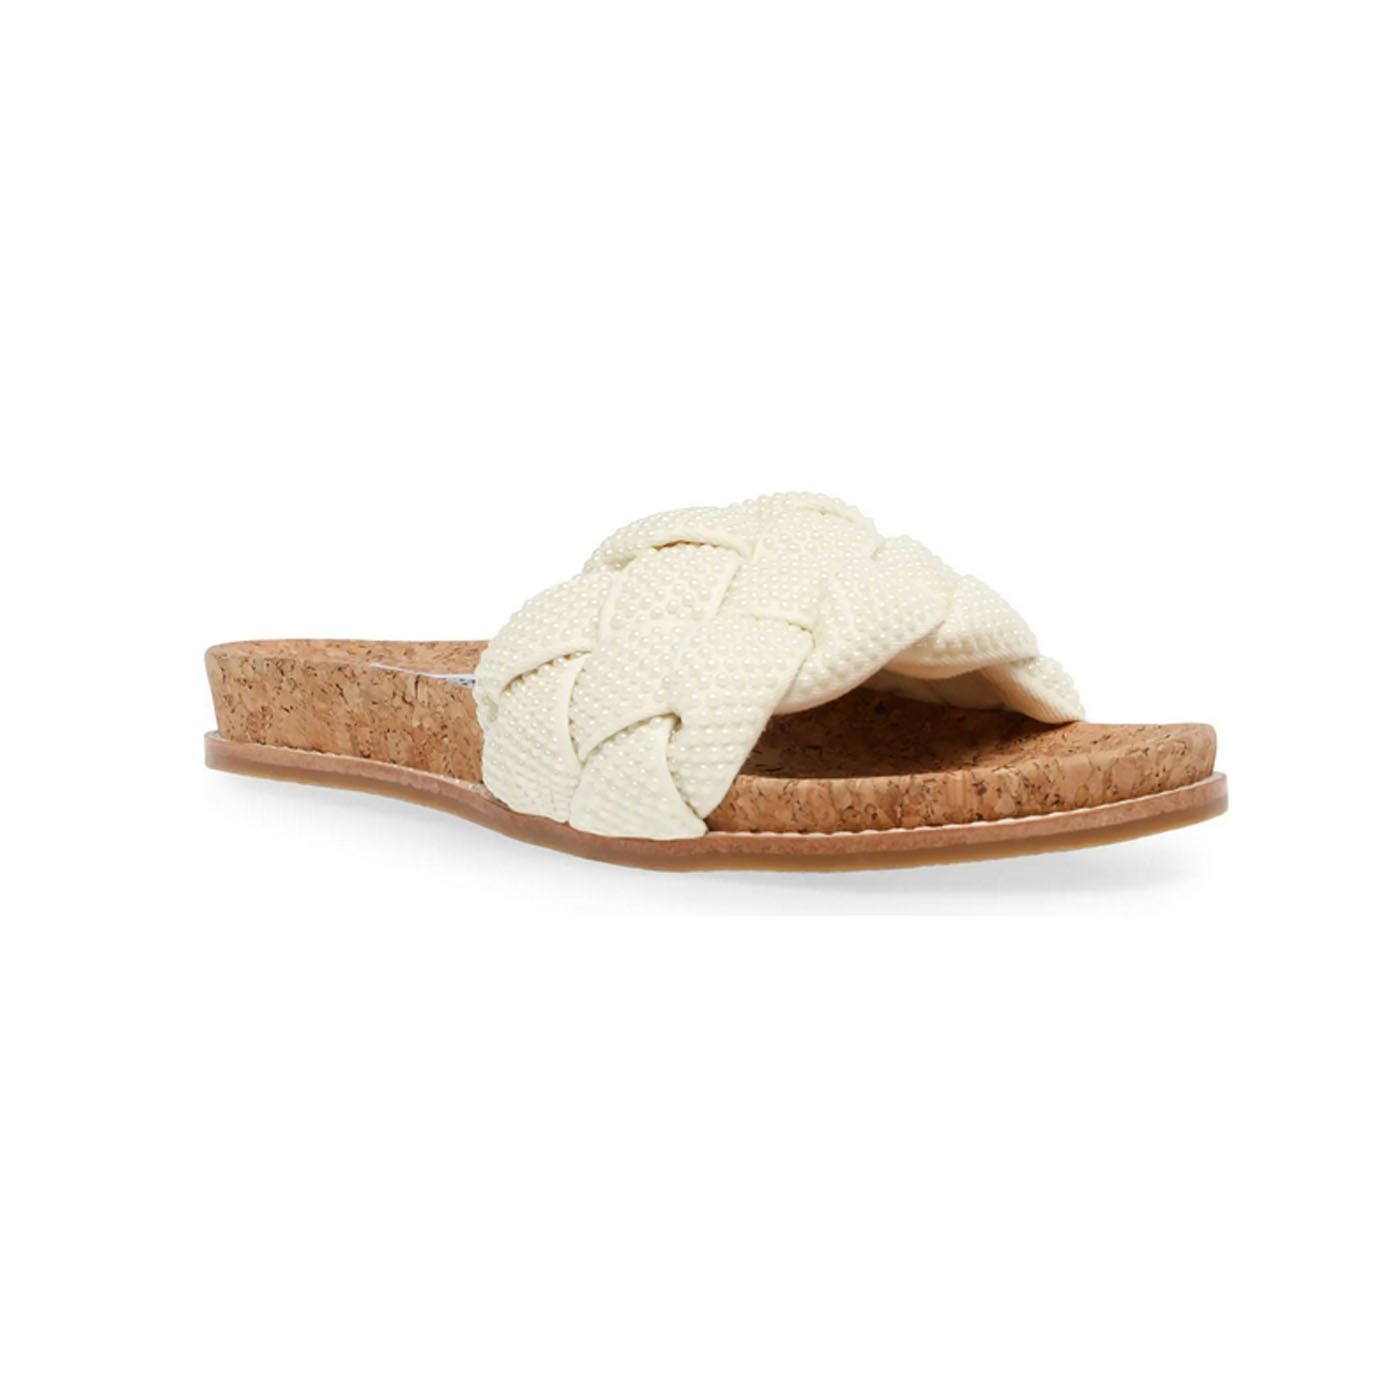 These pearl embellished slide sandals are a must have for summer! #ABlissfulNest